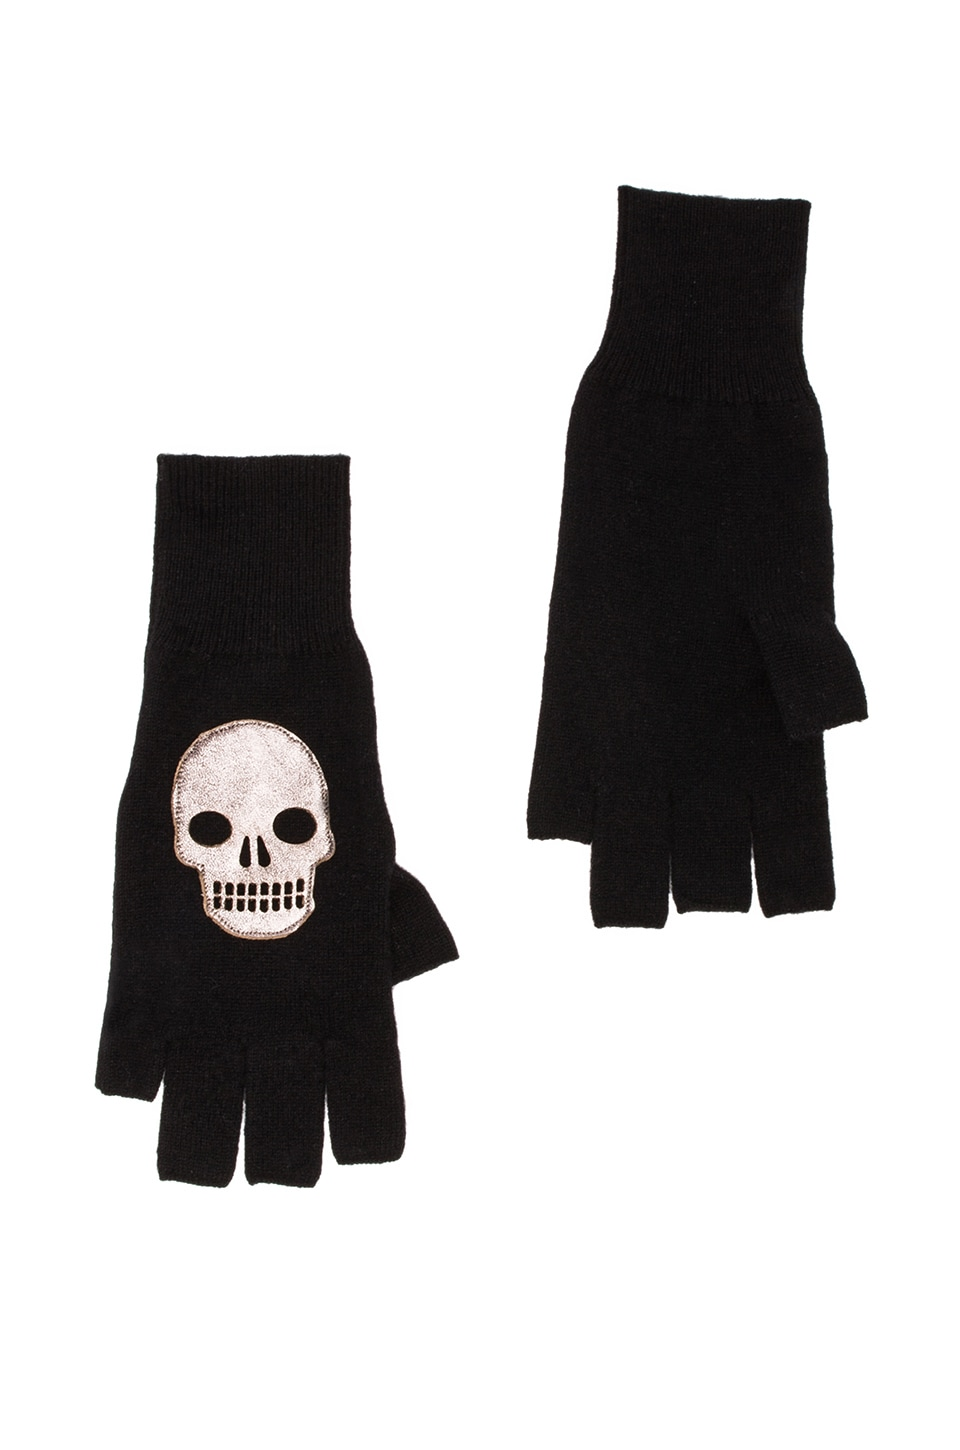 Autumn Cashmere Fingerless Gloves w/ Leather Skull in Black Combo